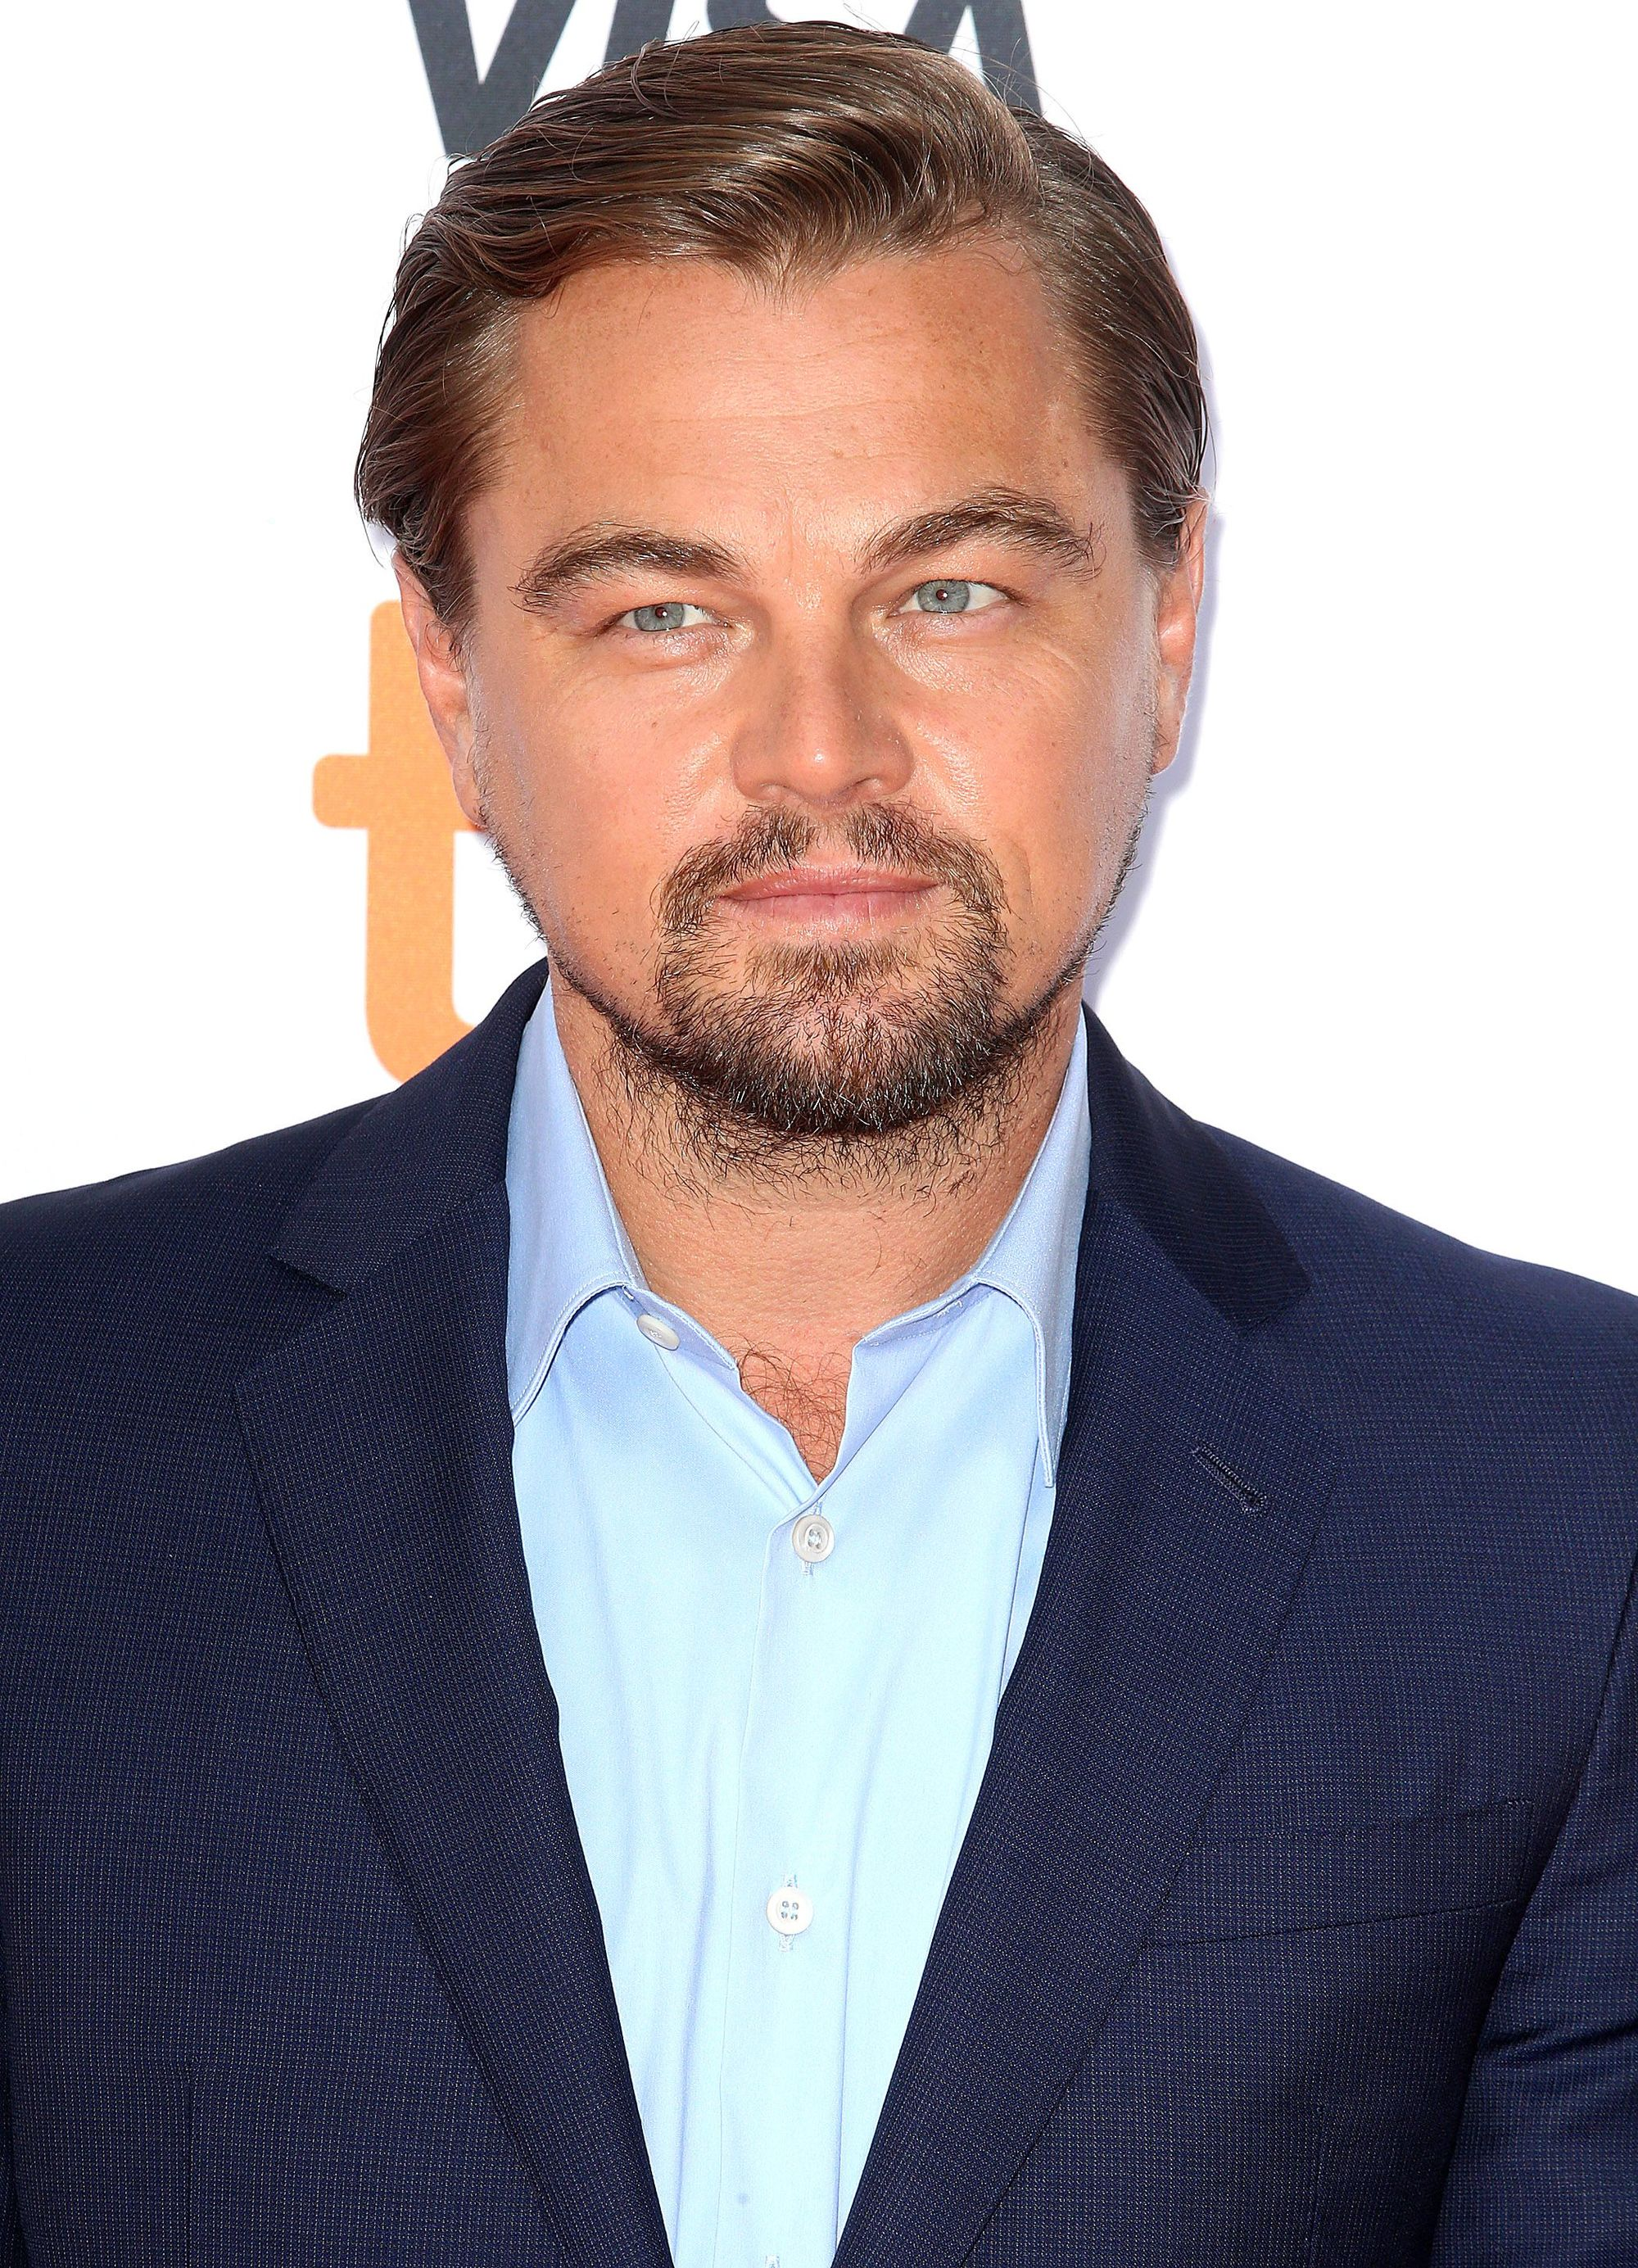 Hairstyles for men over 40: Photo of Leonardo DiCaprio with slicked over mid brown hair